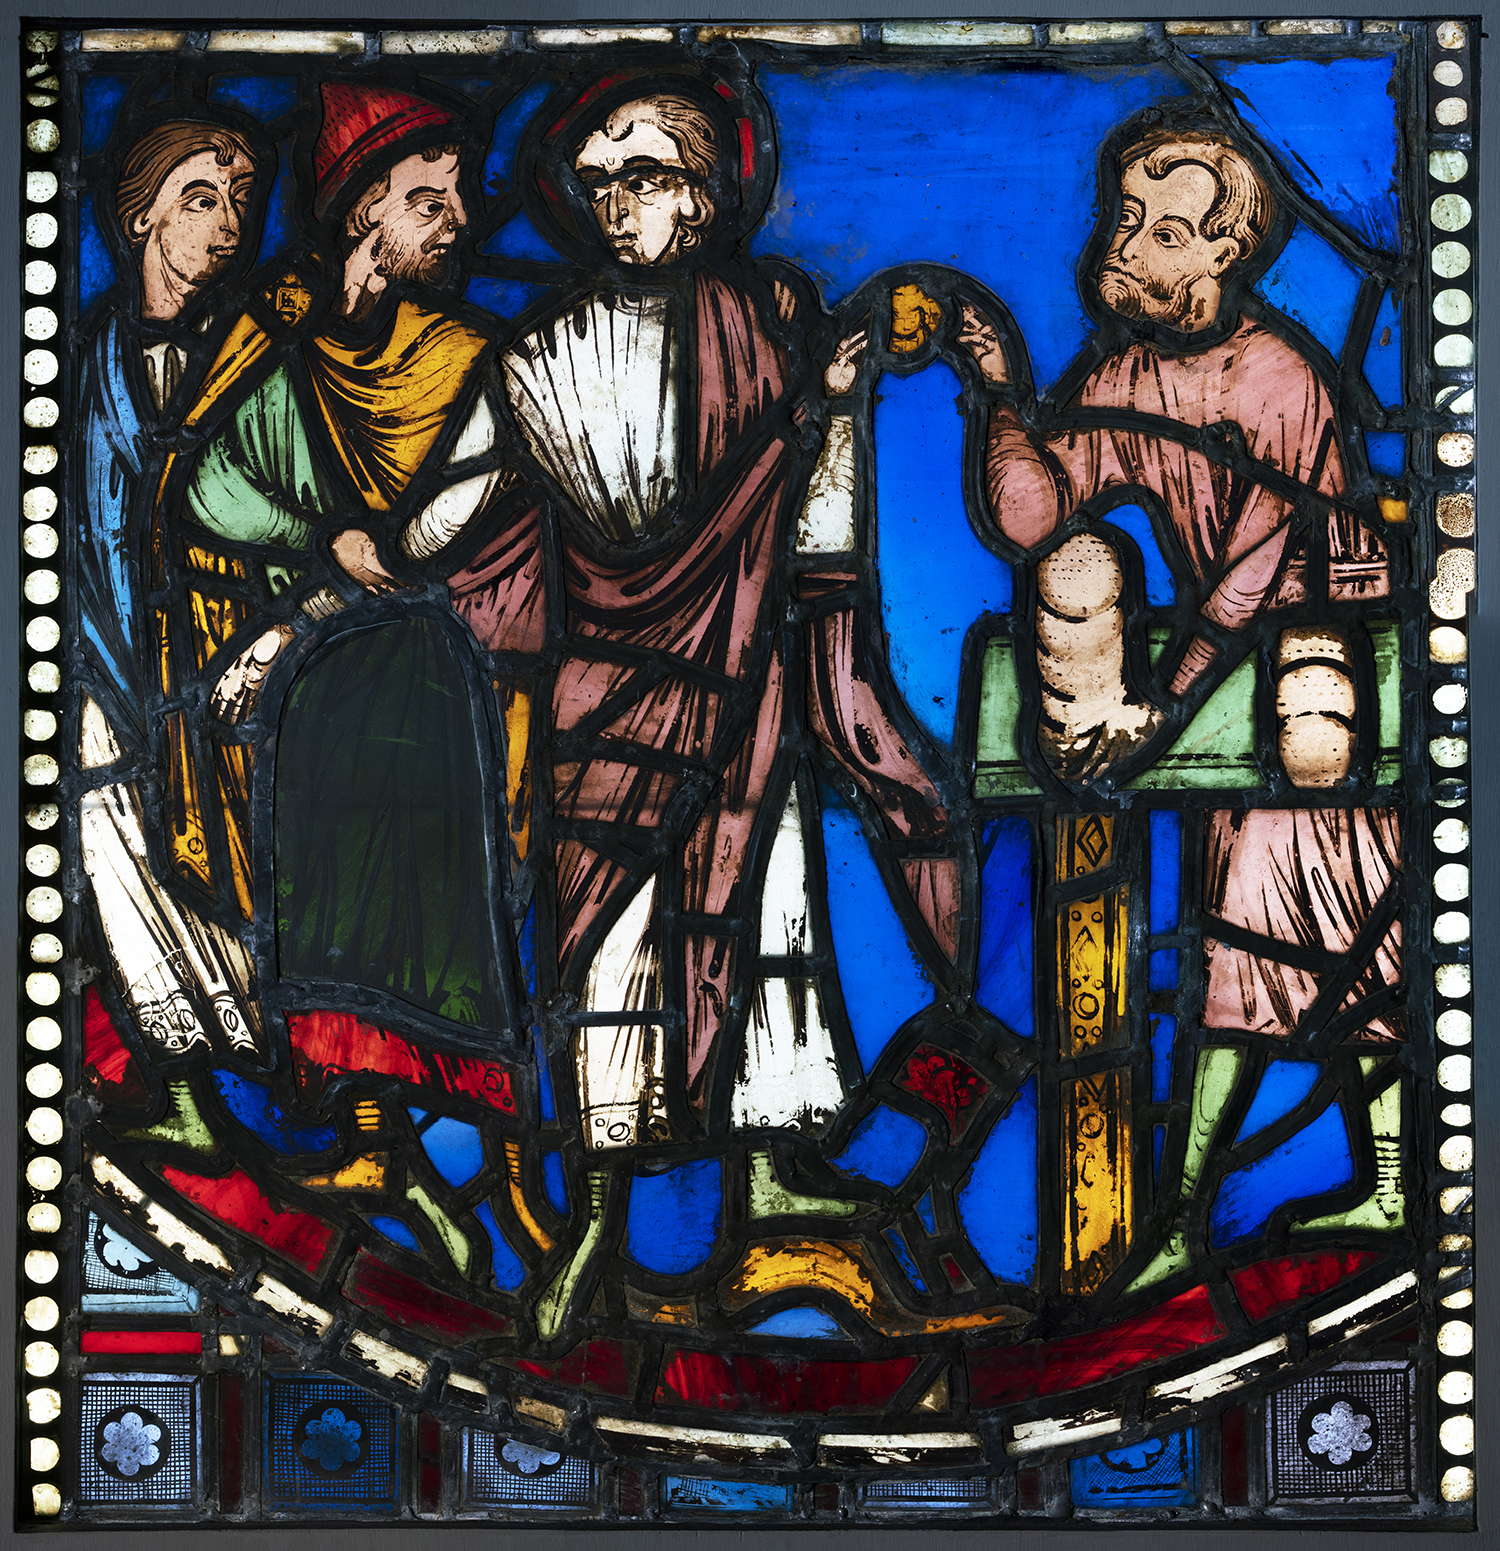 Figure 7: Malchus is seized while trying to buy bread with an antique coin, from the Seven Sleepers of Ephesus window of the nave aisle of Rouen Cathedral, c. 1200-1203, now in Glencairn Museum (03.SG.49).